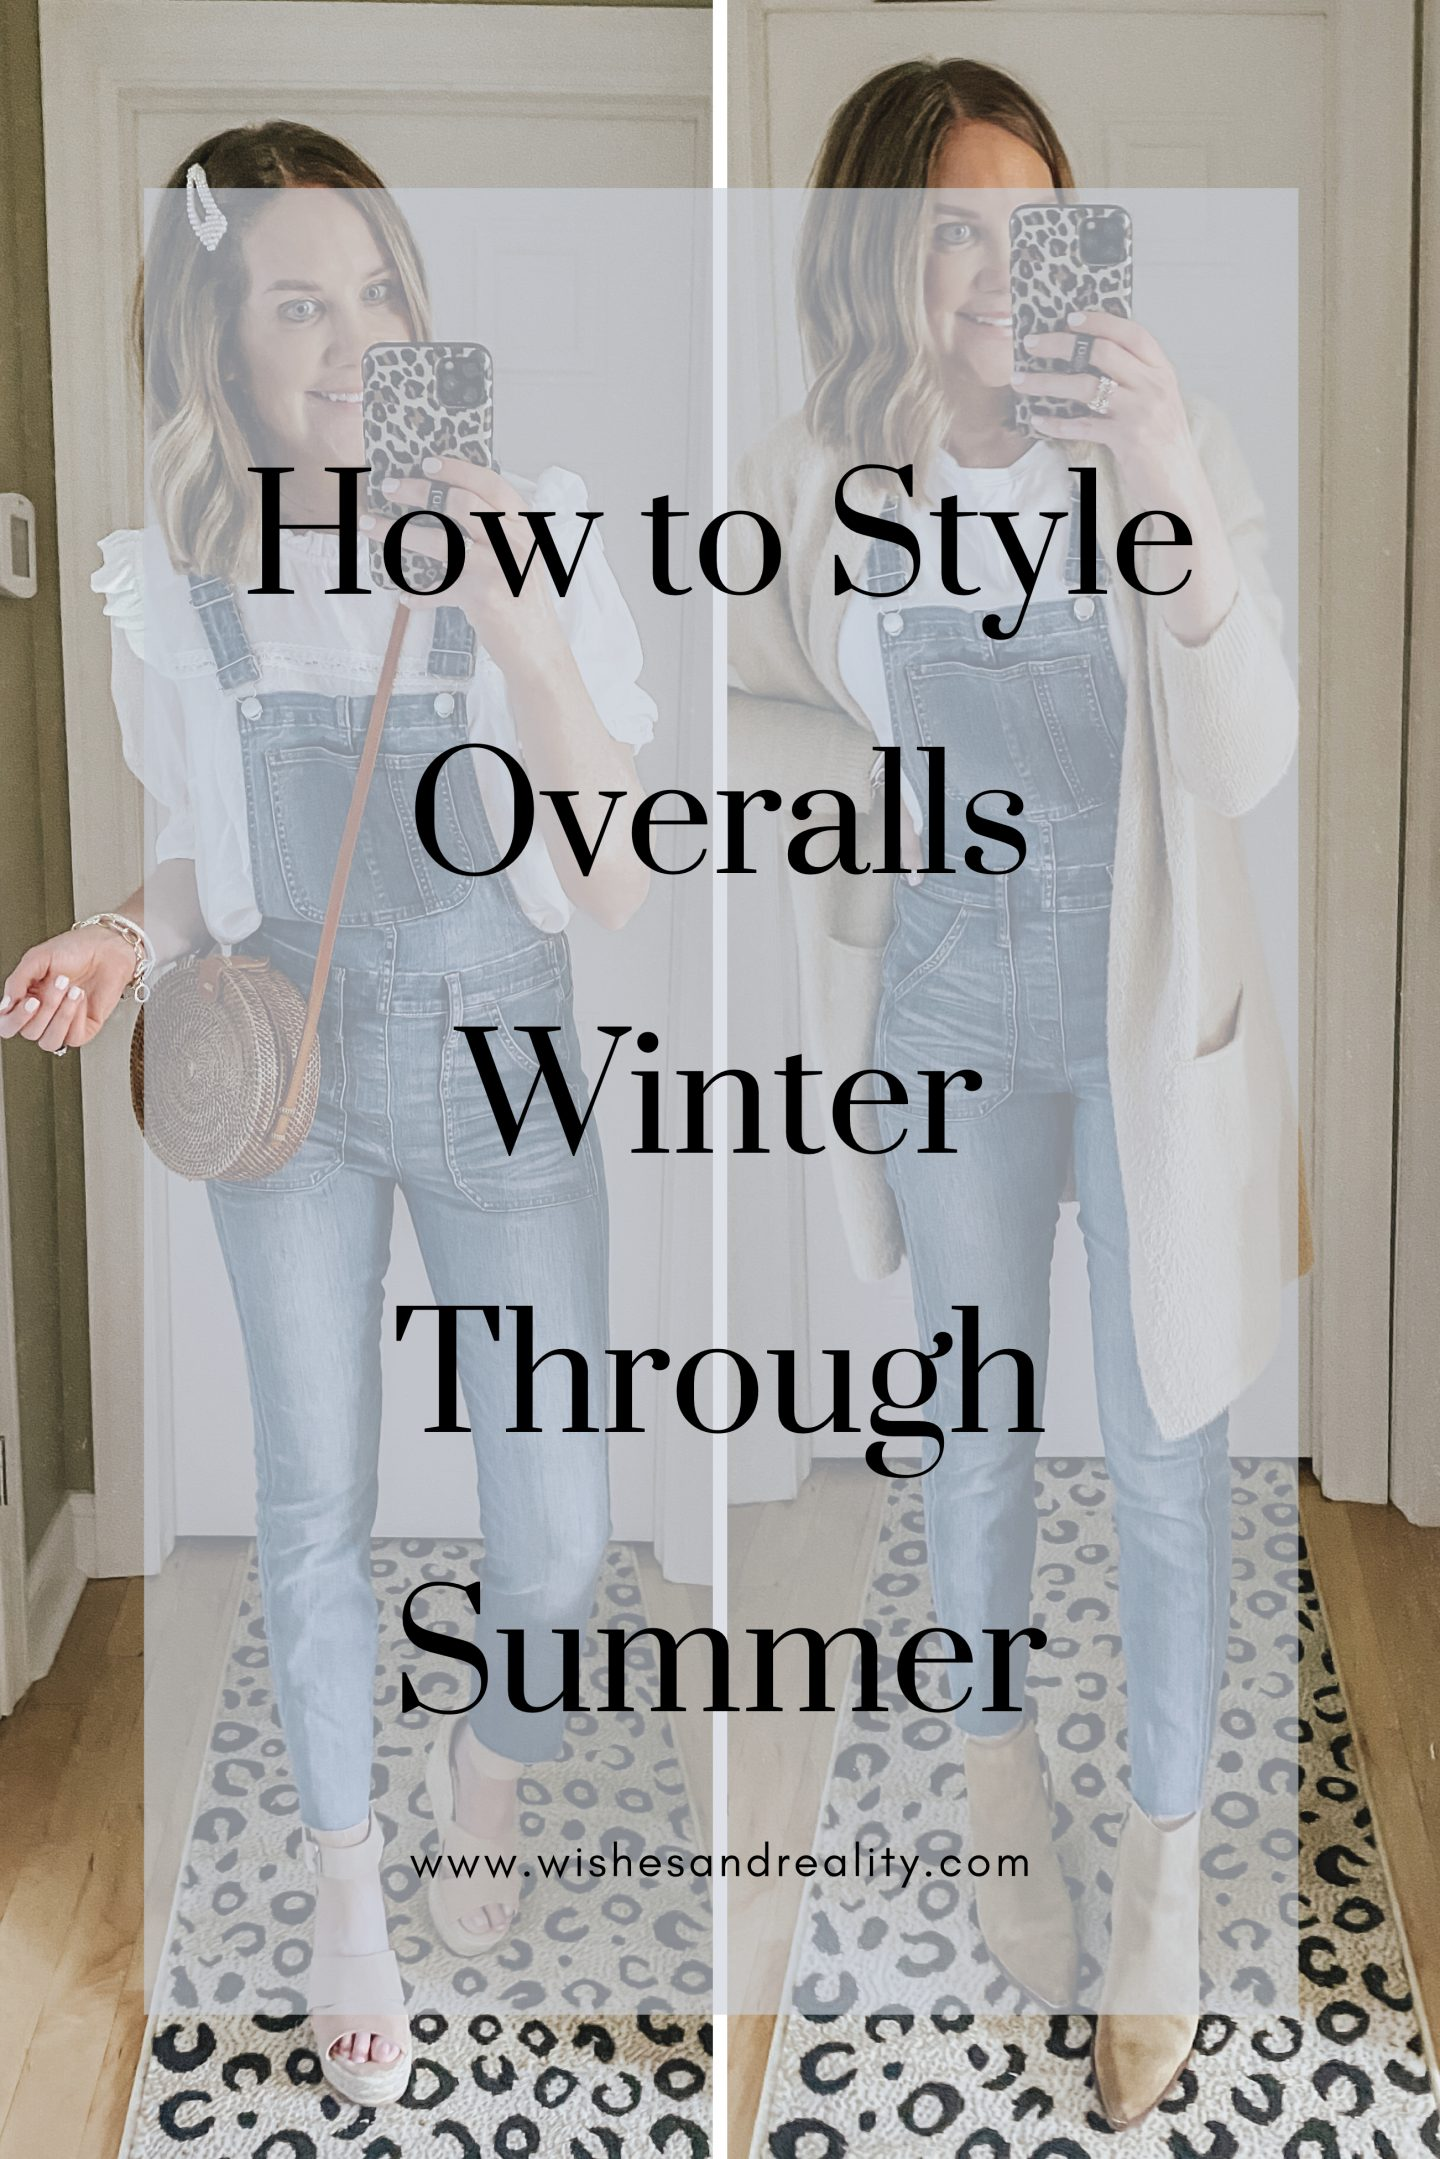 How to Style Overalls Winter Through Summer